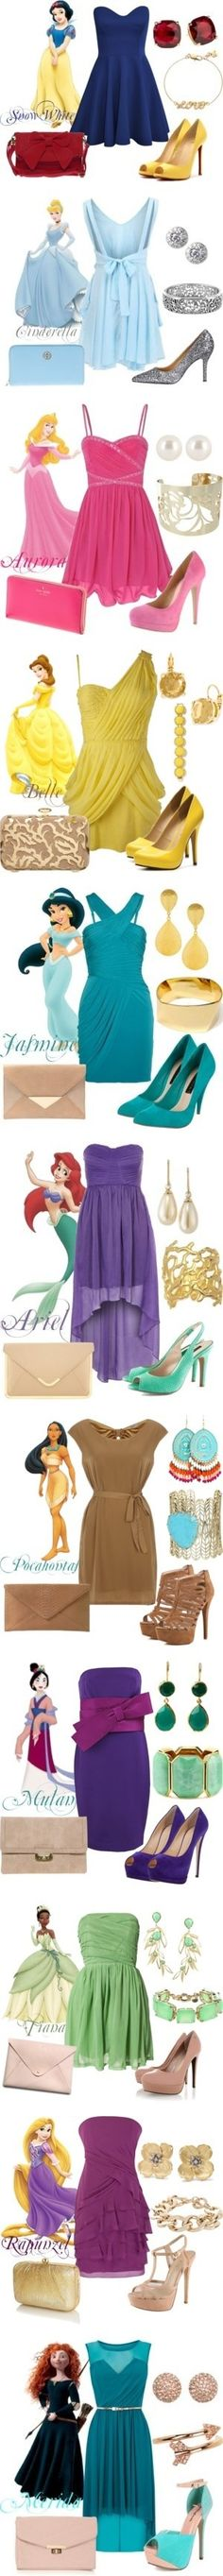 Disney princess inspired outfits                                                                                                                                                                                 More